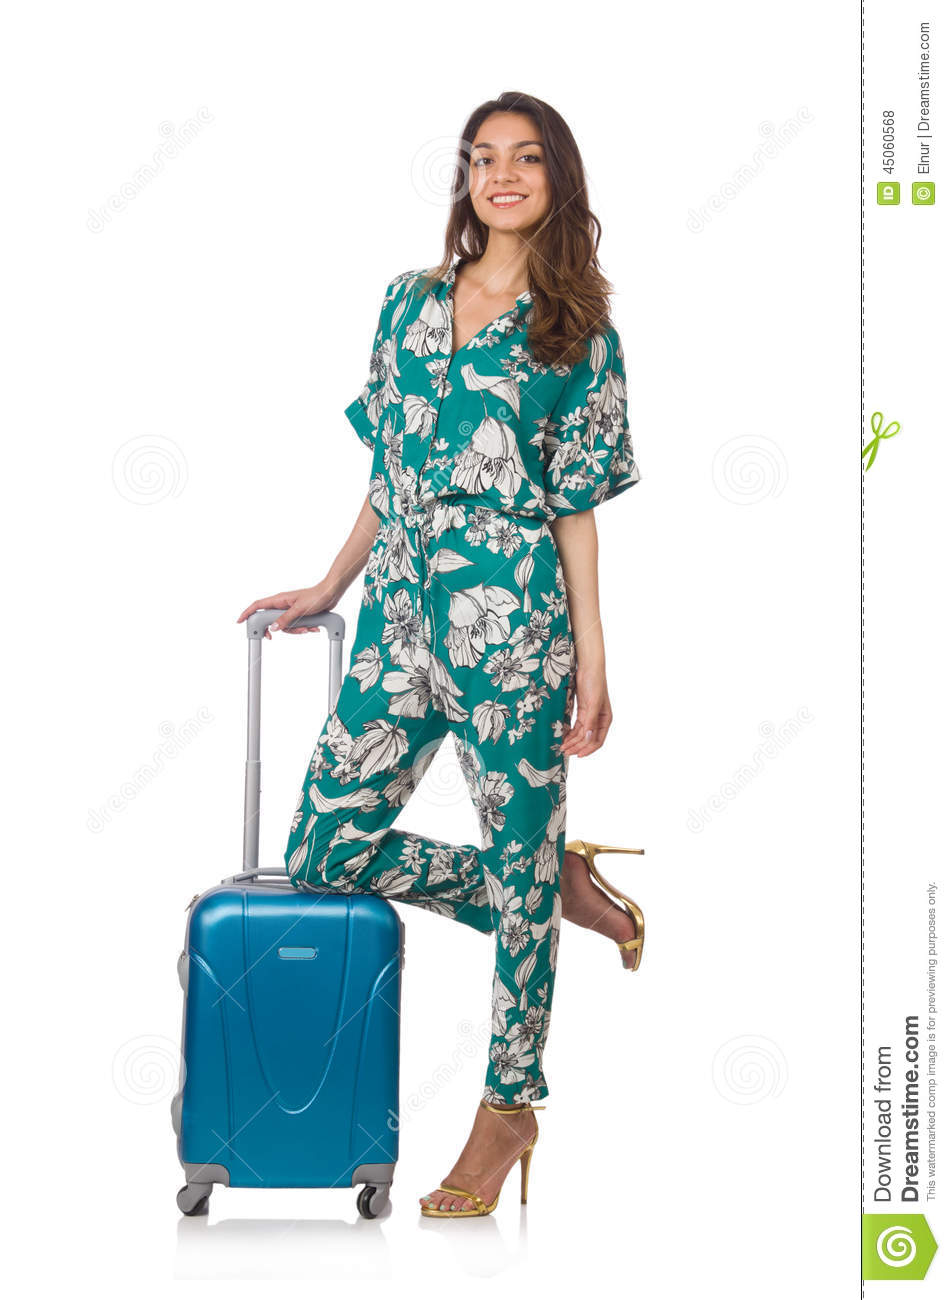 Woman with suitcase ready